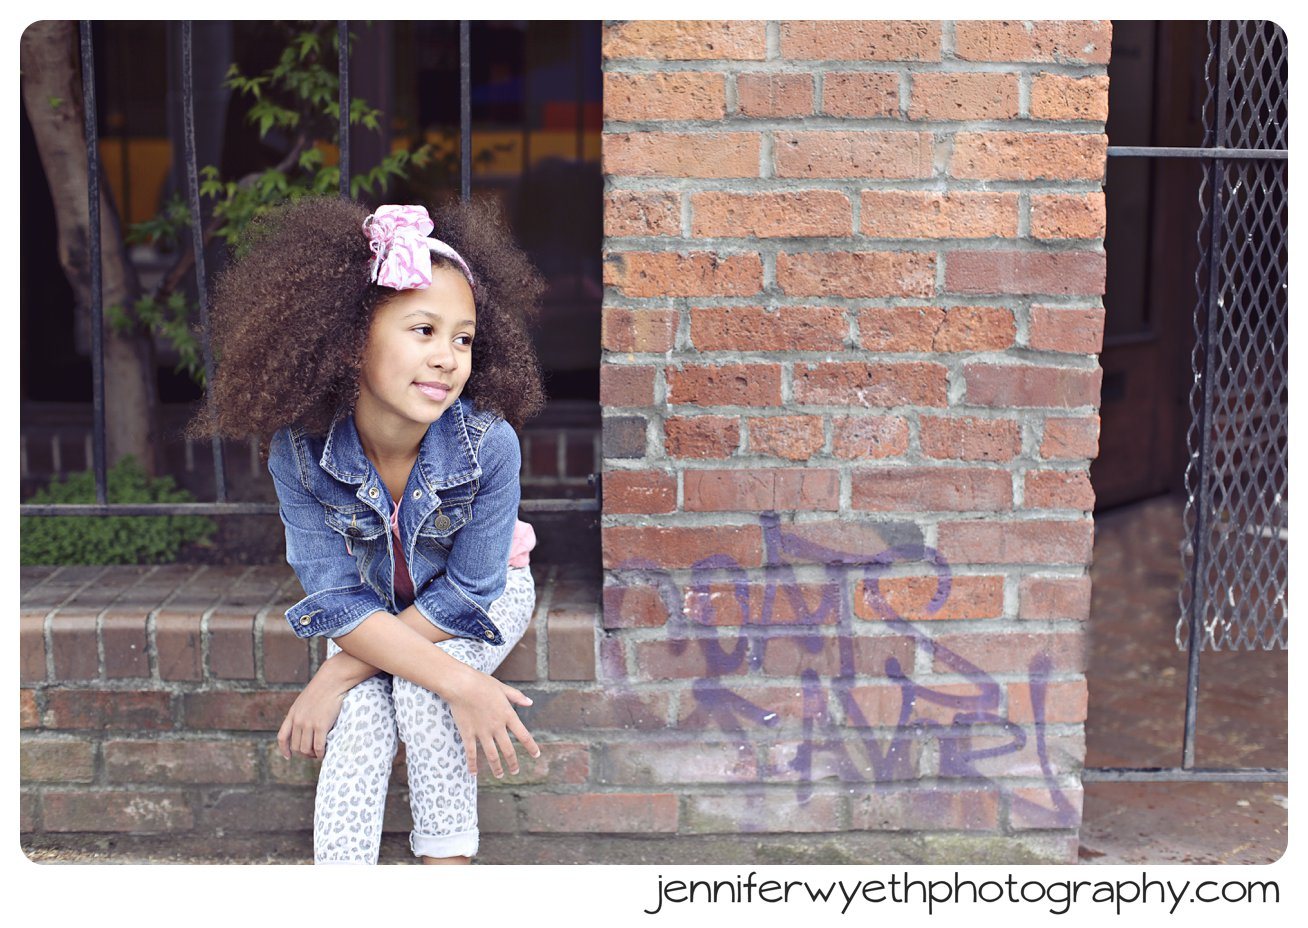 graffiti brick wall that little girl is sitting on for pictures